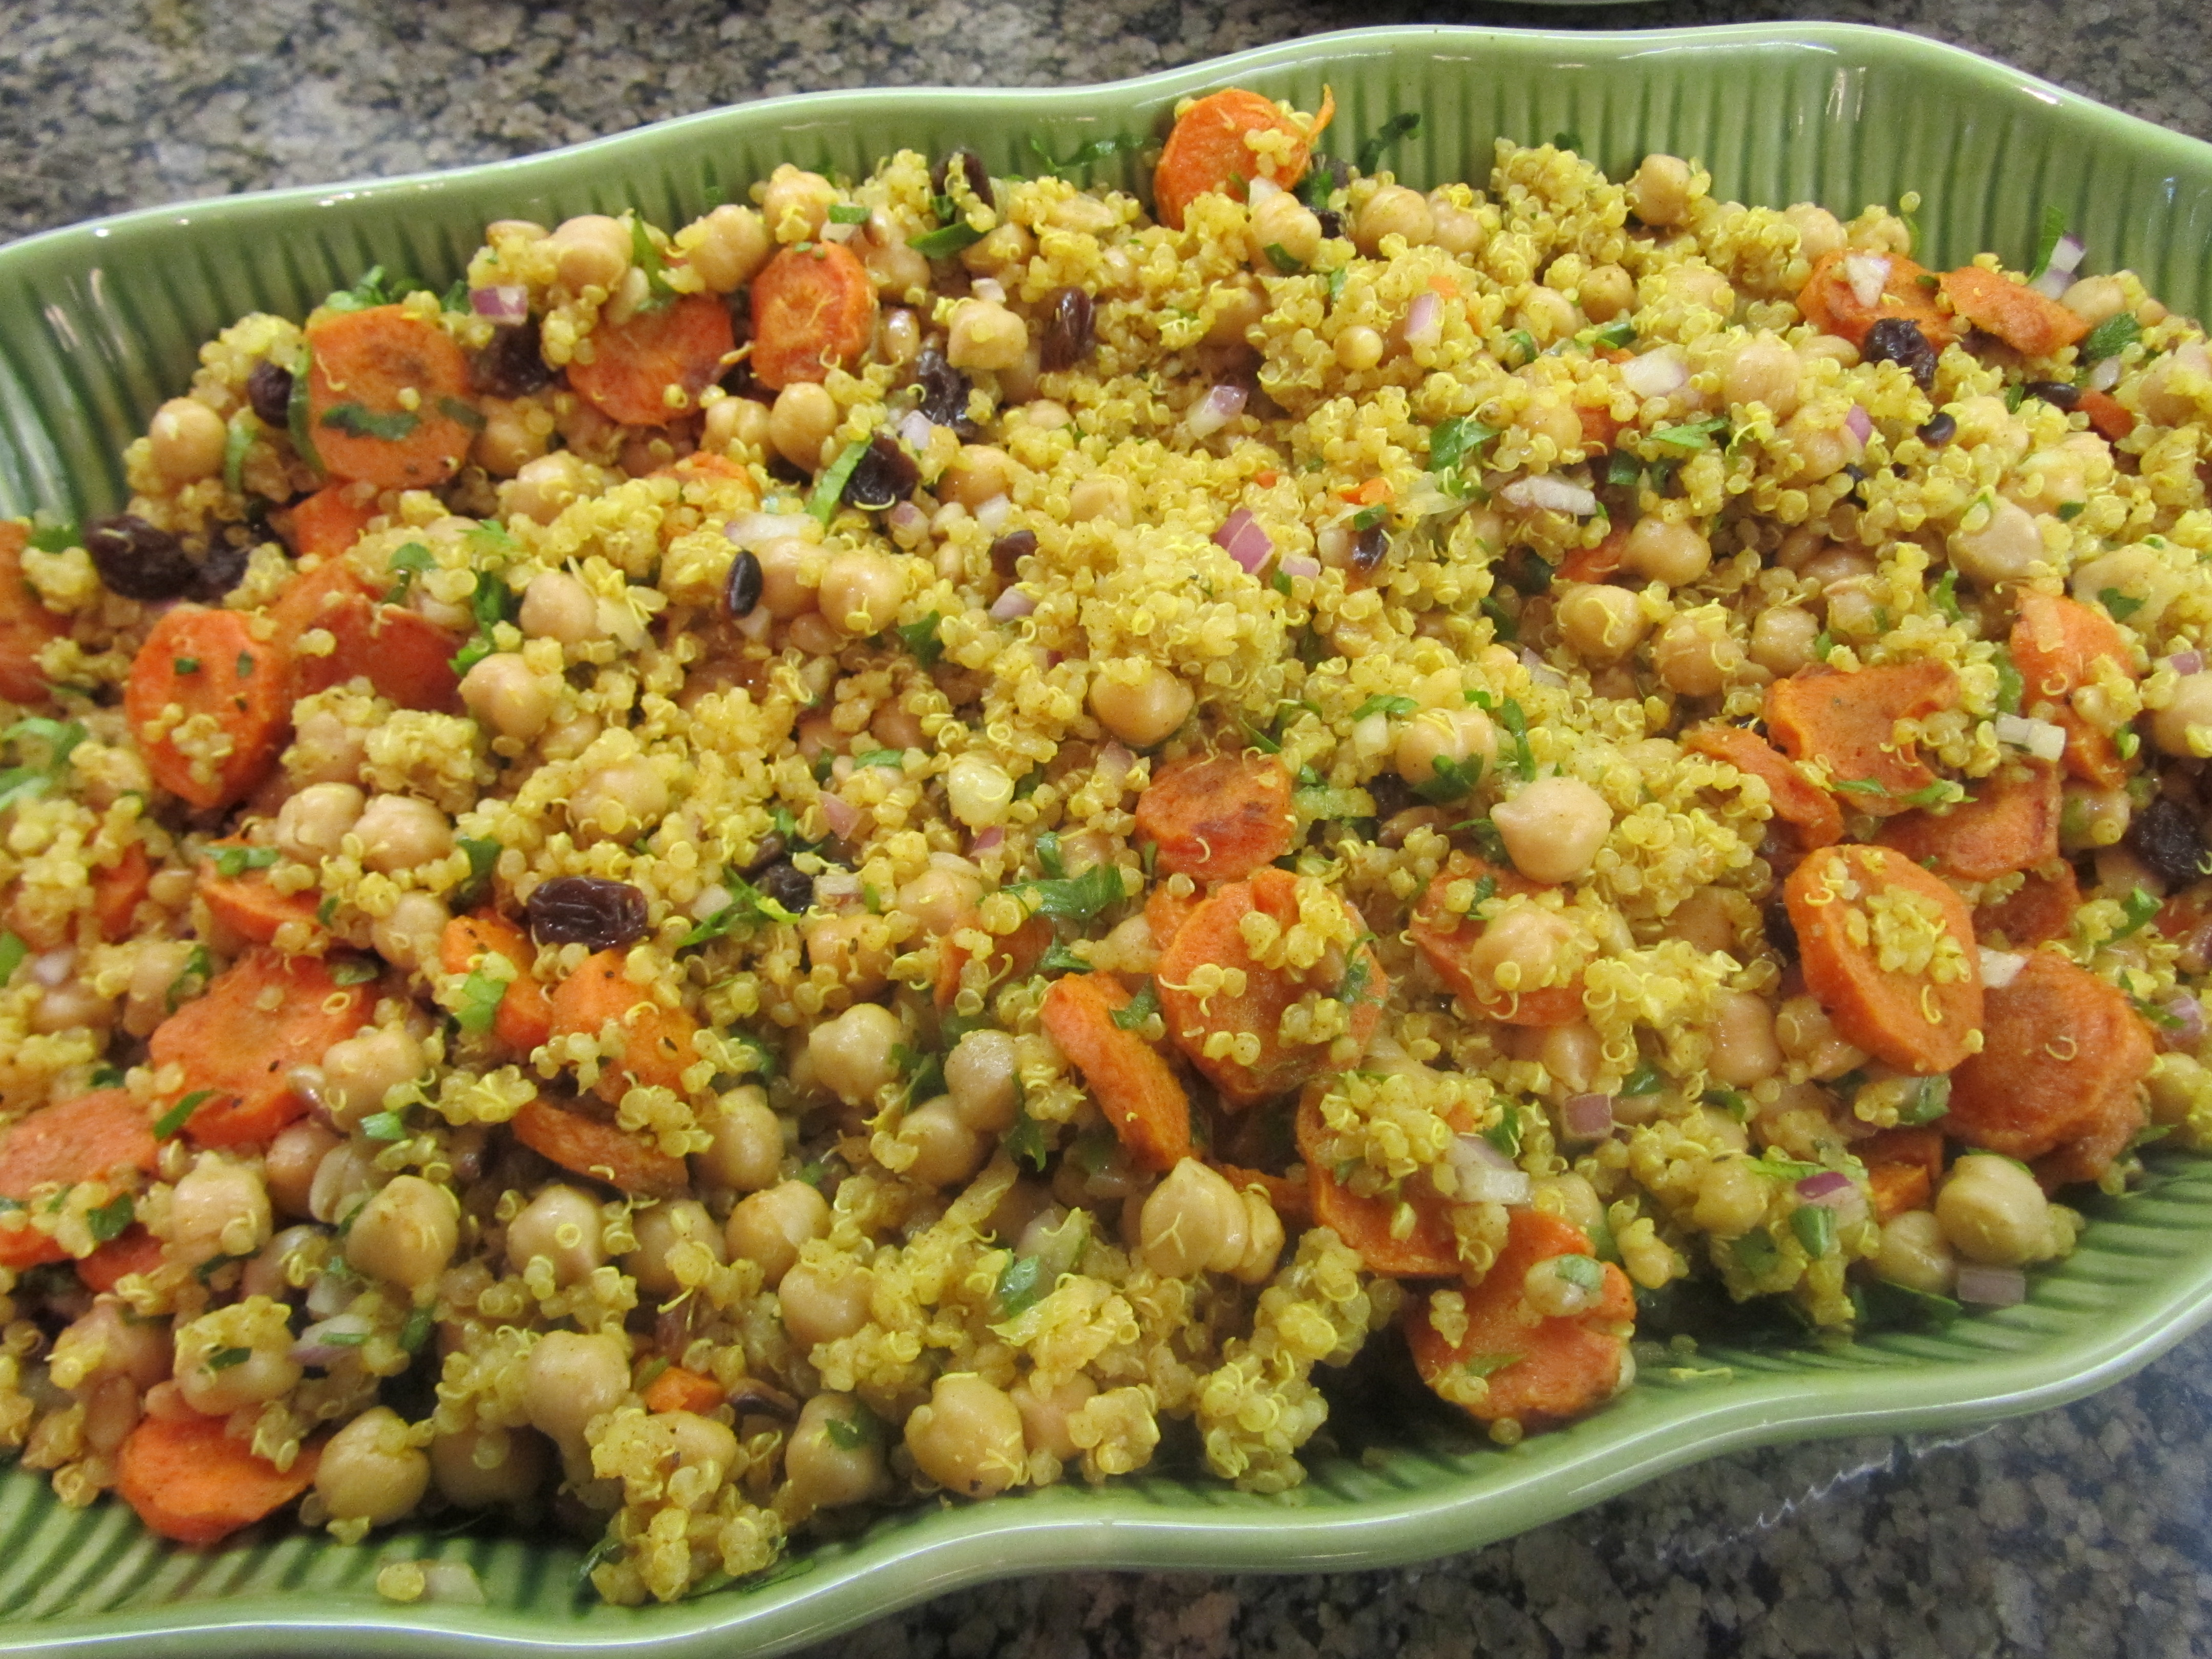 Moroccan Roasted Carrot and Chickpea Quinoa Salad